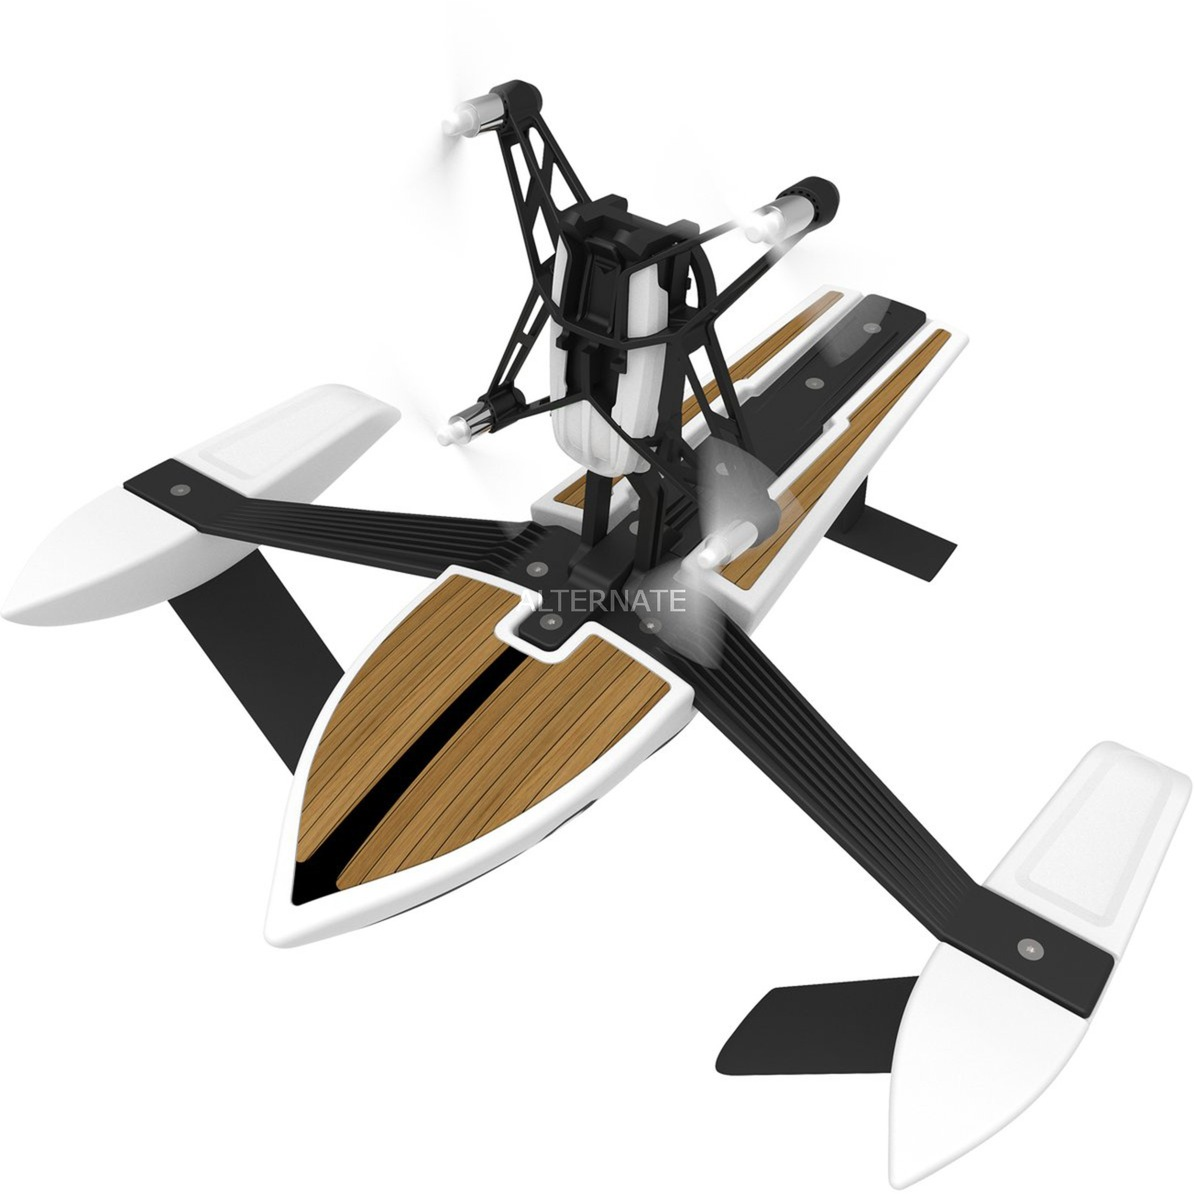 Parrot MD HYDROFOIL DRONE New Z